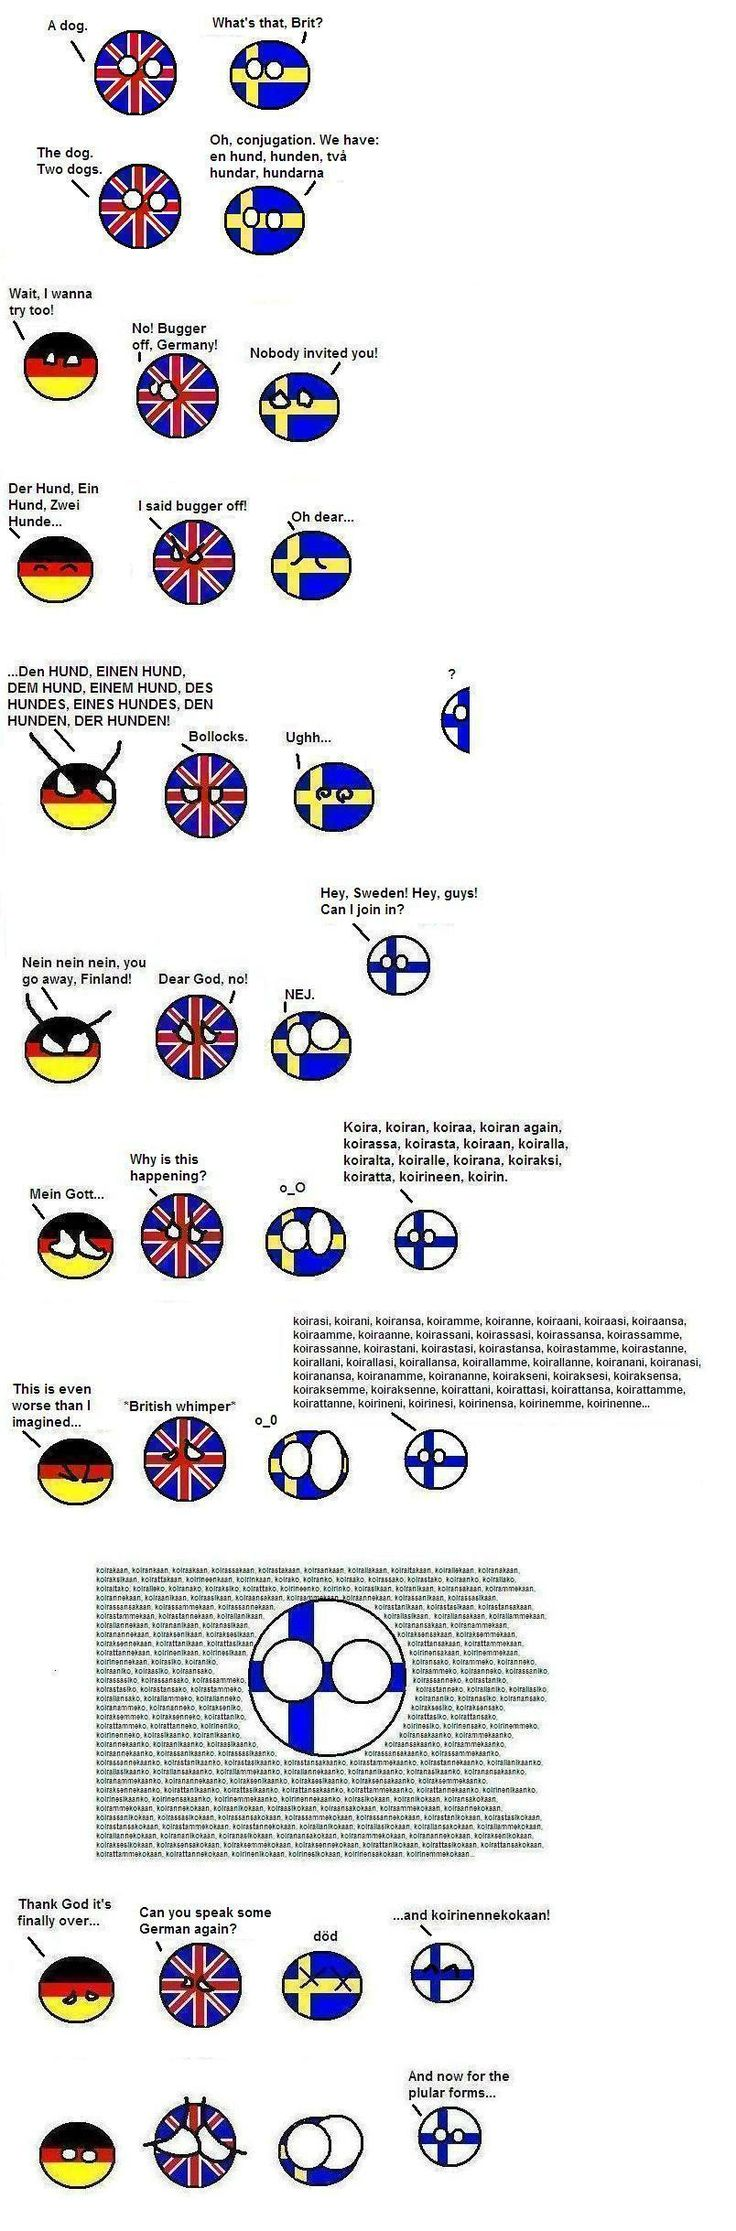 Finnish them! (Welcome to Finland!)